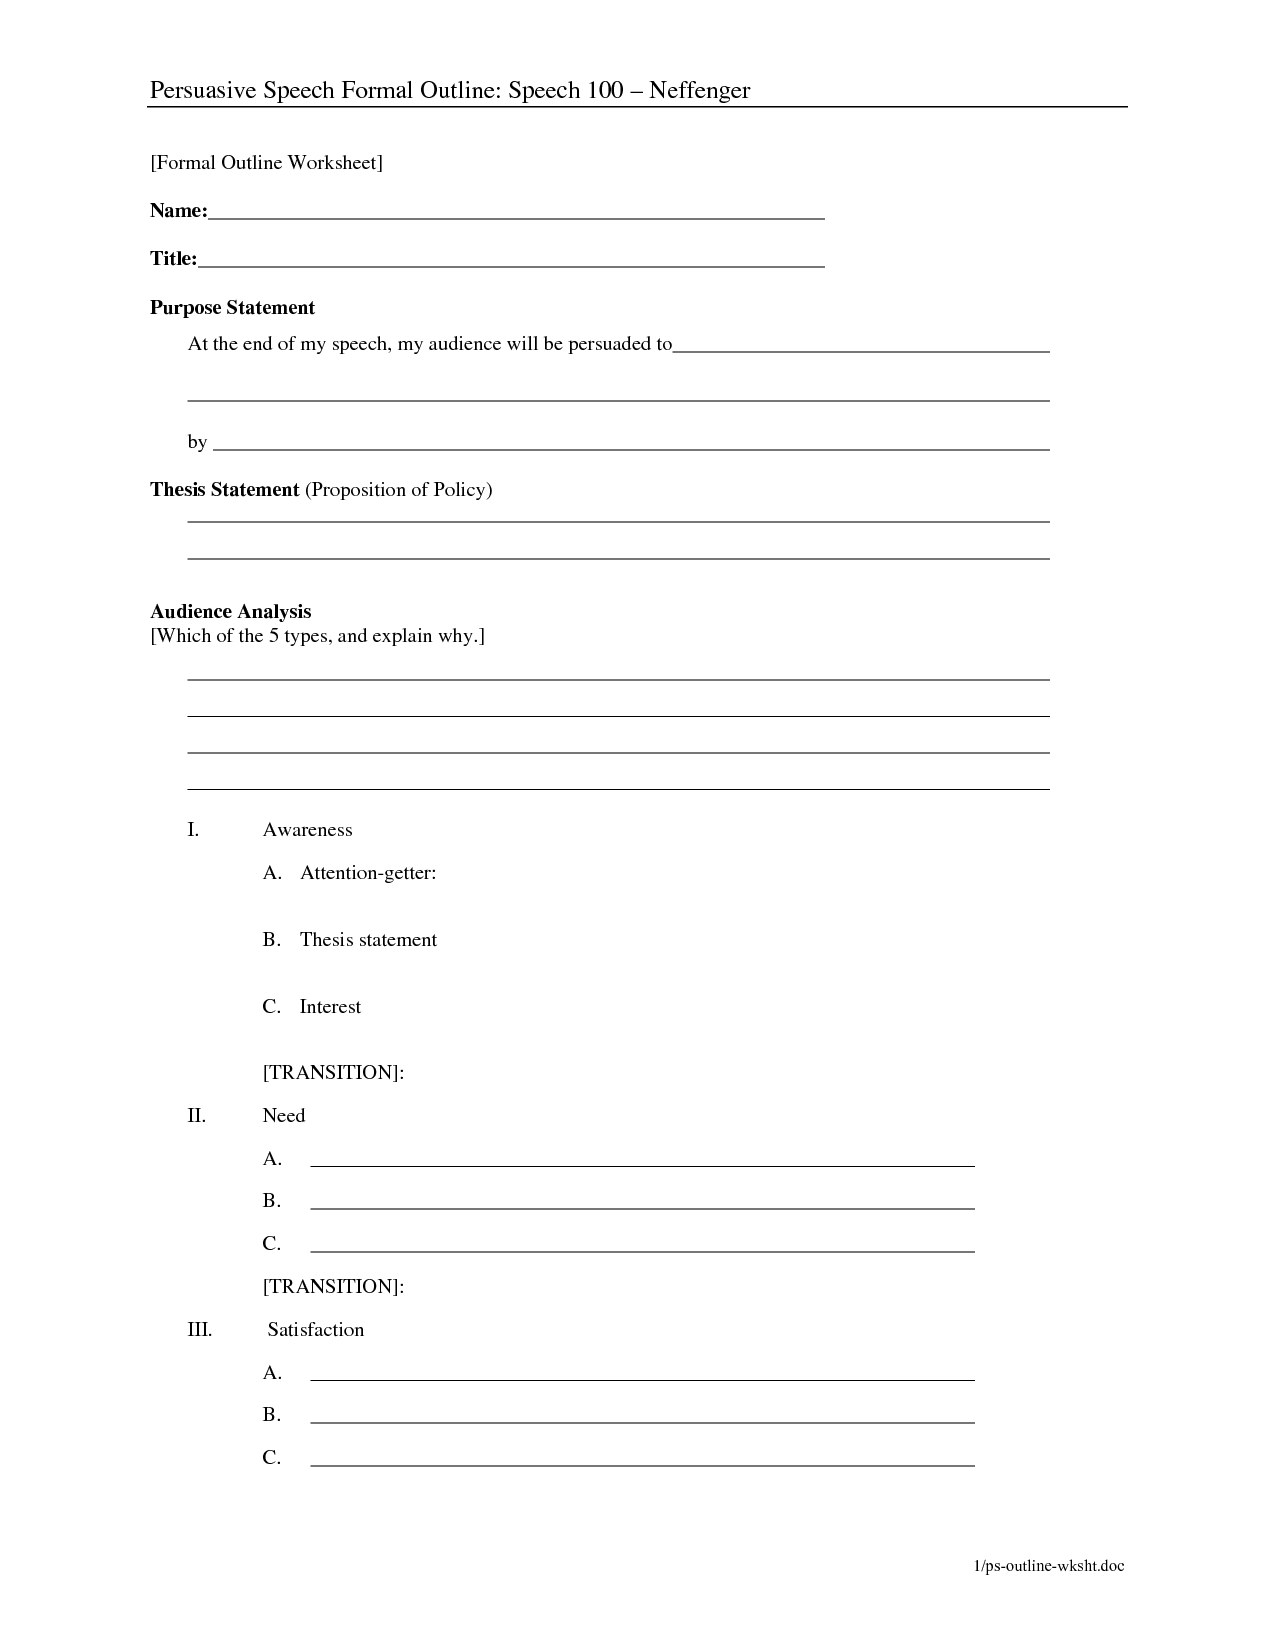 010 essay outline template example fill in the